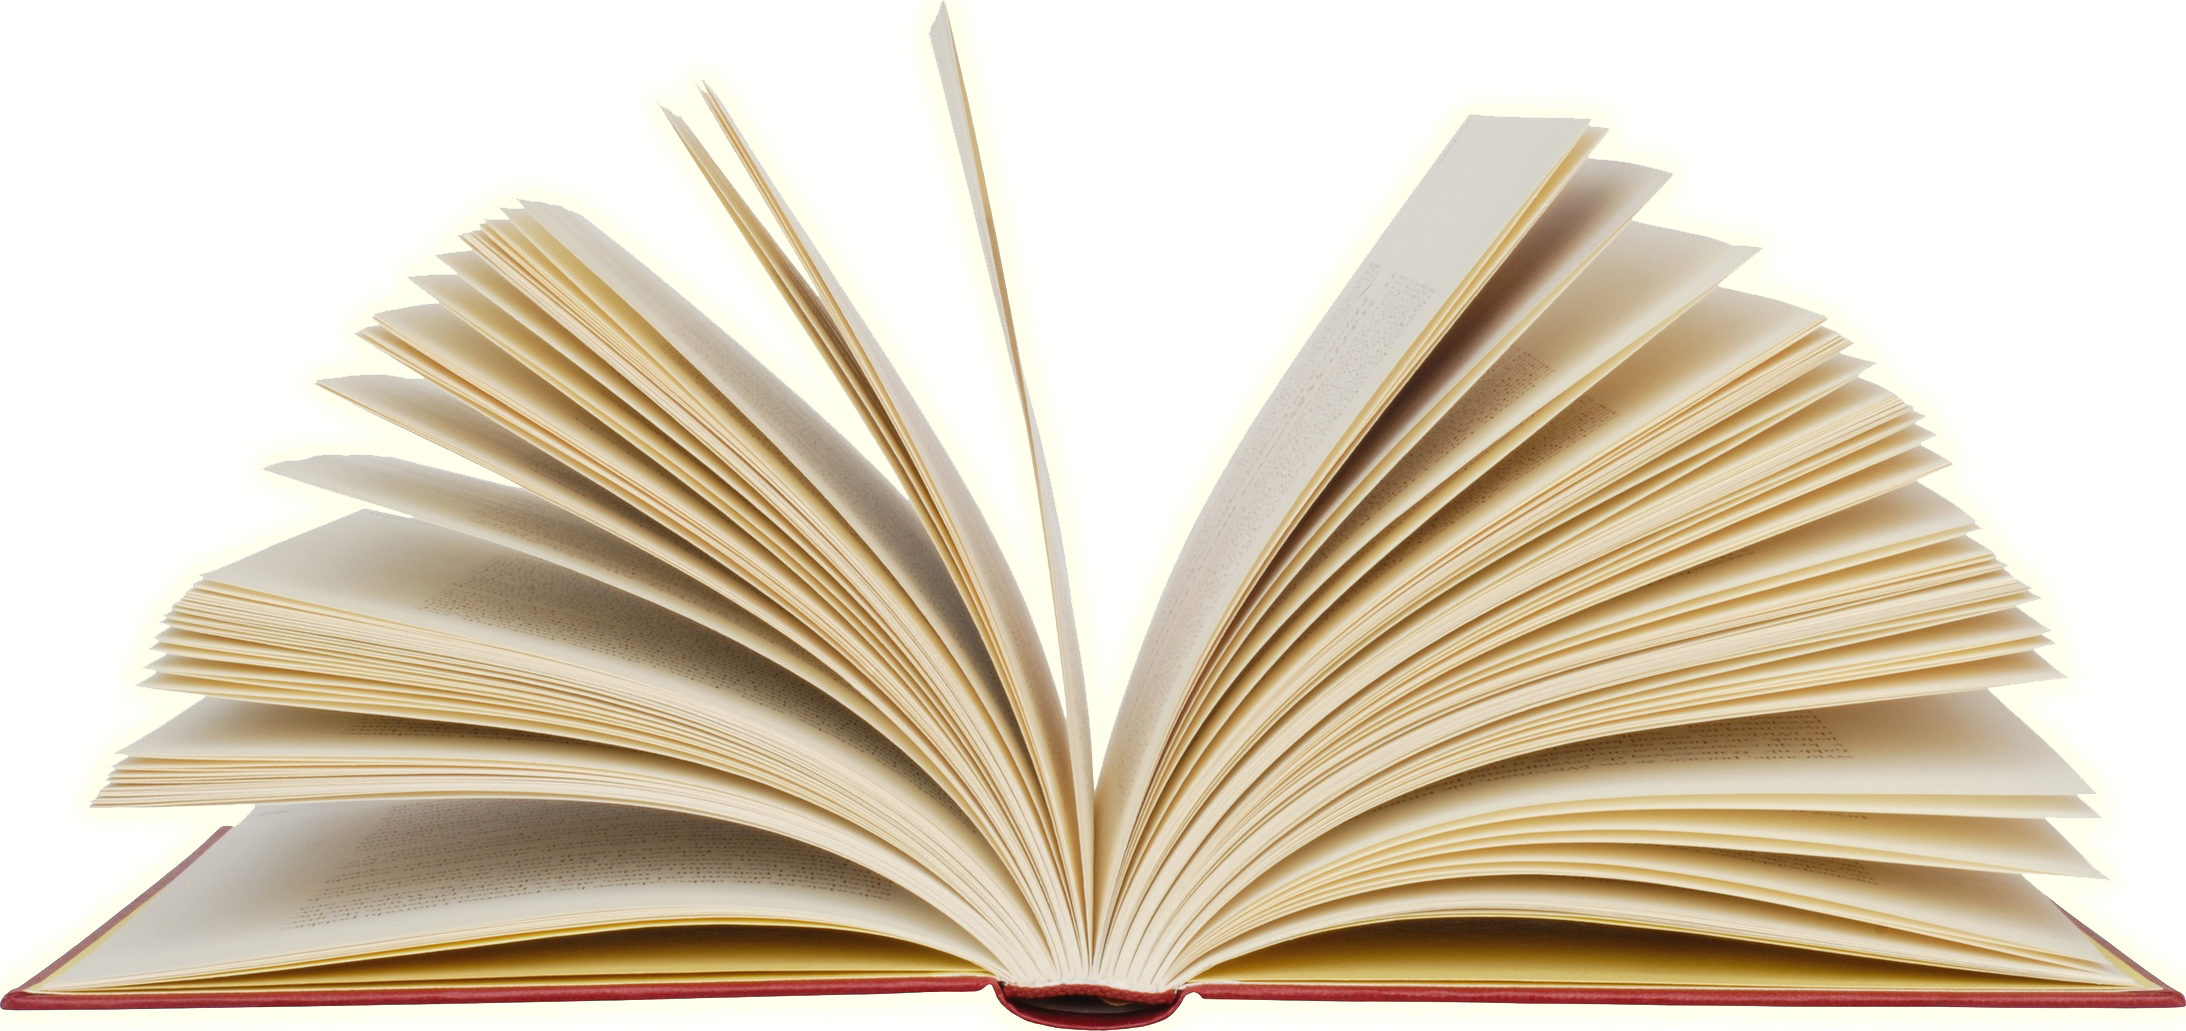 Open Book Transparent Background PNG Image